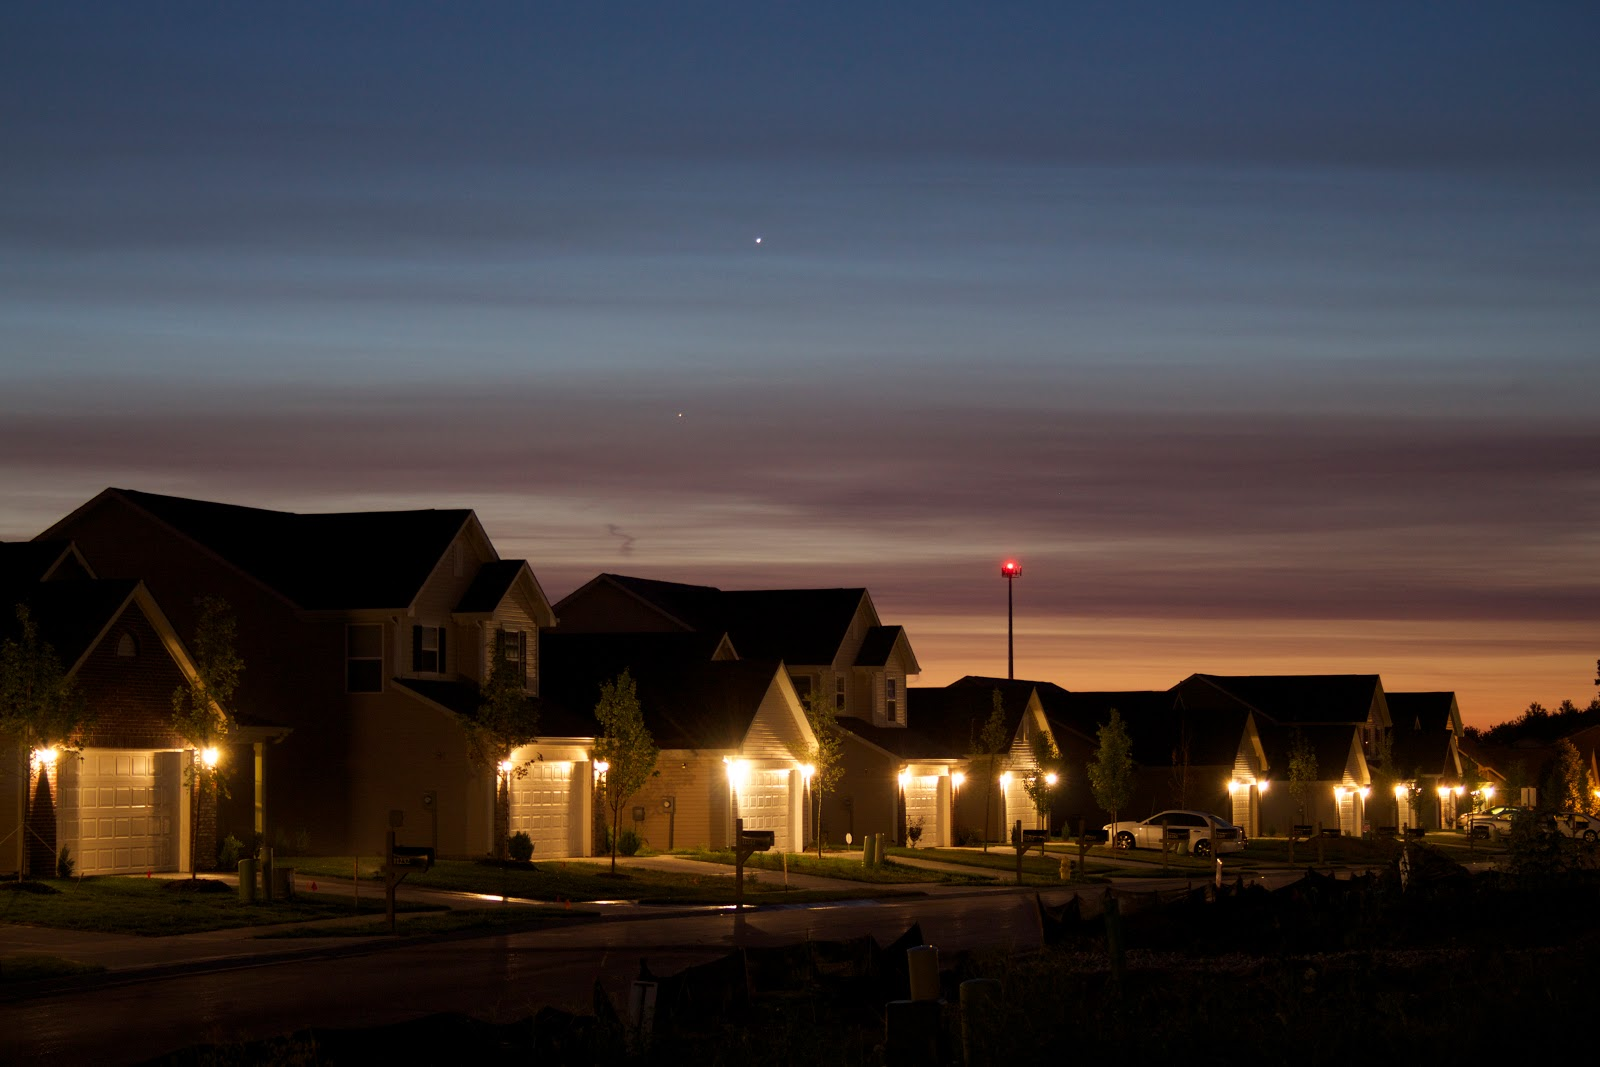 venus and jupiter conjunction in the morning